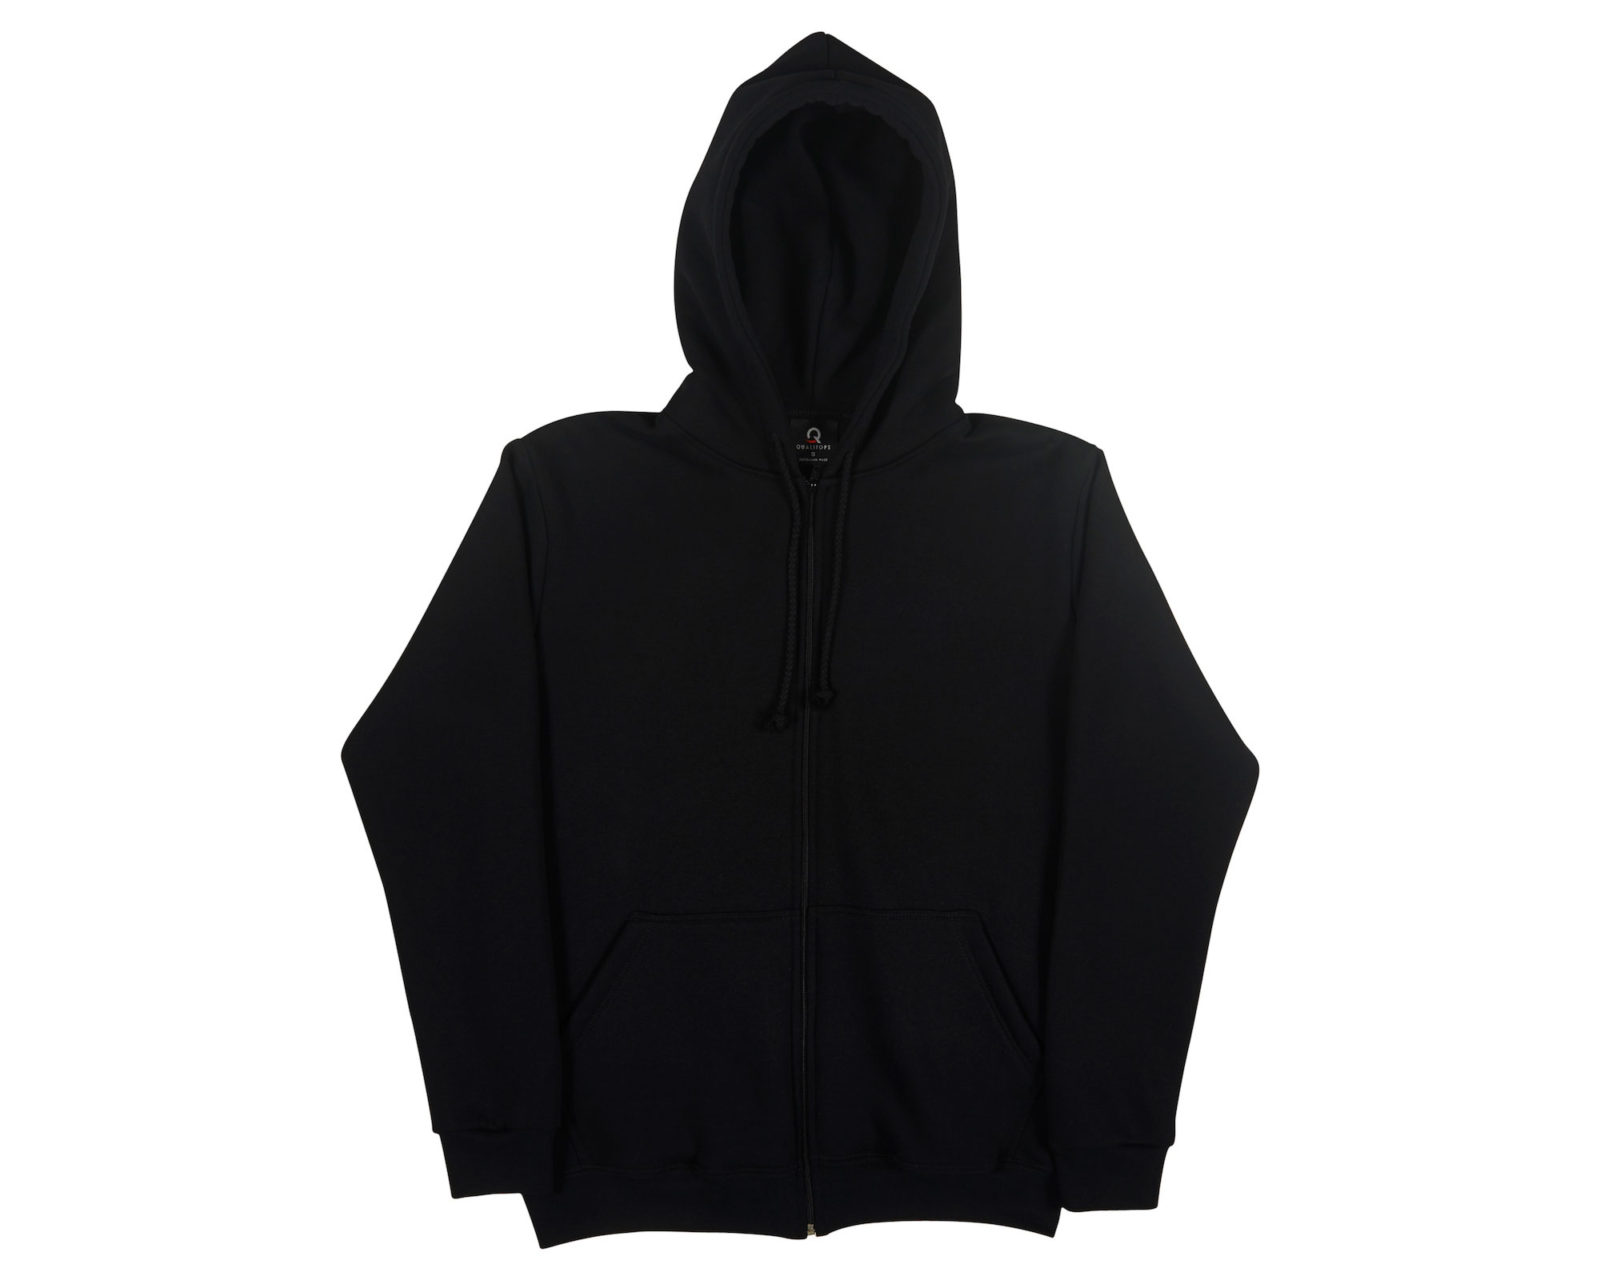 Qualitops Mens Zip Hoodie Polycotton Australian made clothing